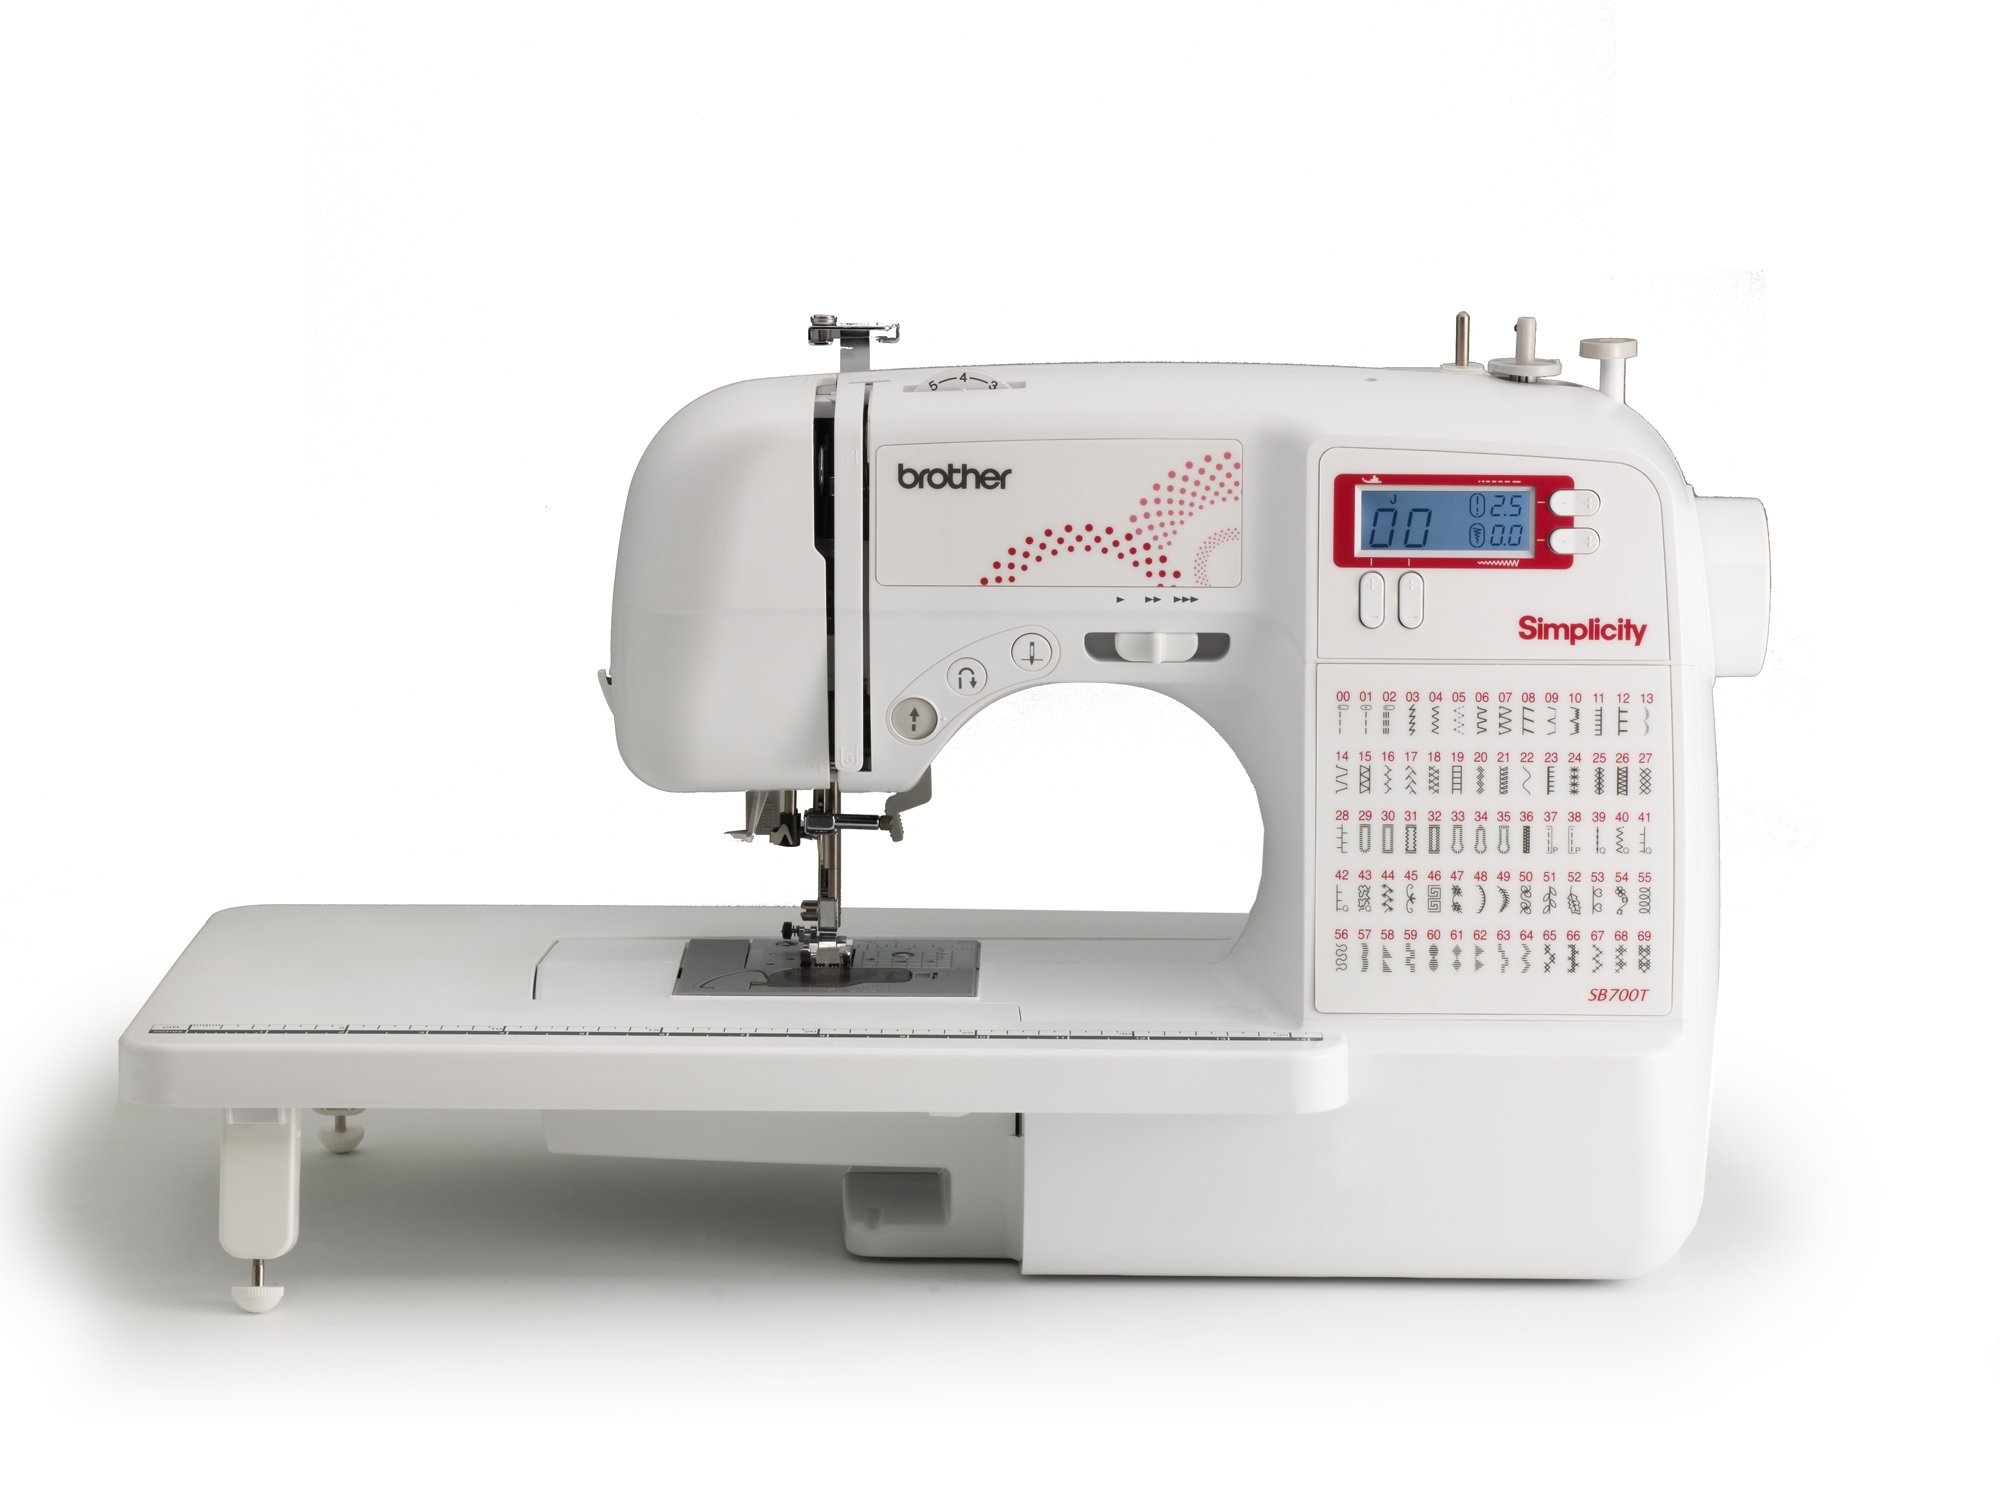 Genial Bror Simplicity Rh Crazyredheadquilting Com Bror Sewingmachines At Walmart Bror Sewing Machine Parts Bror Sewing Machine User Manual Complete Wiring Diagrams houzz-02 Brother Sewing Machine Walmart